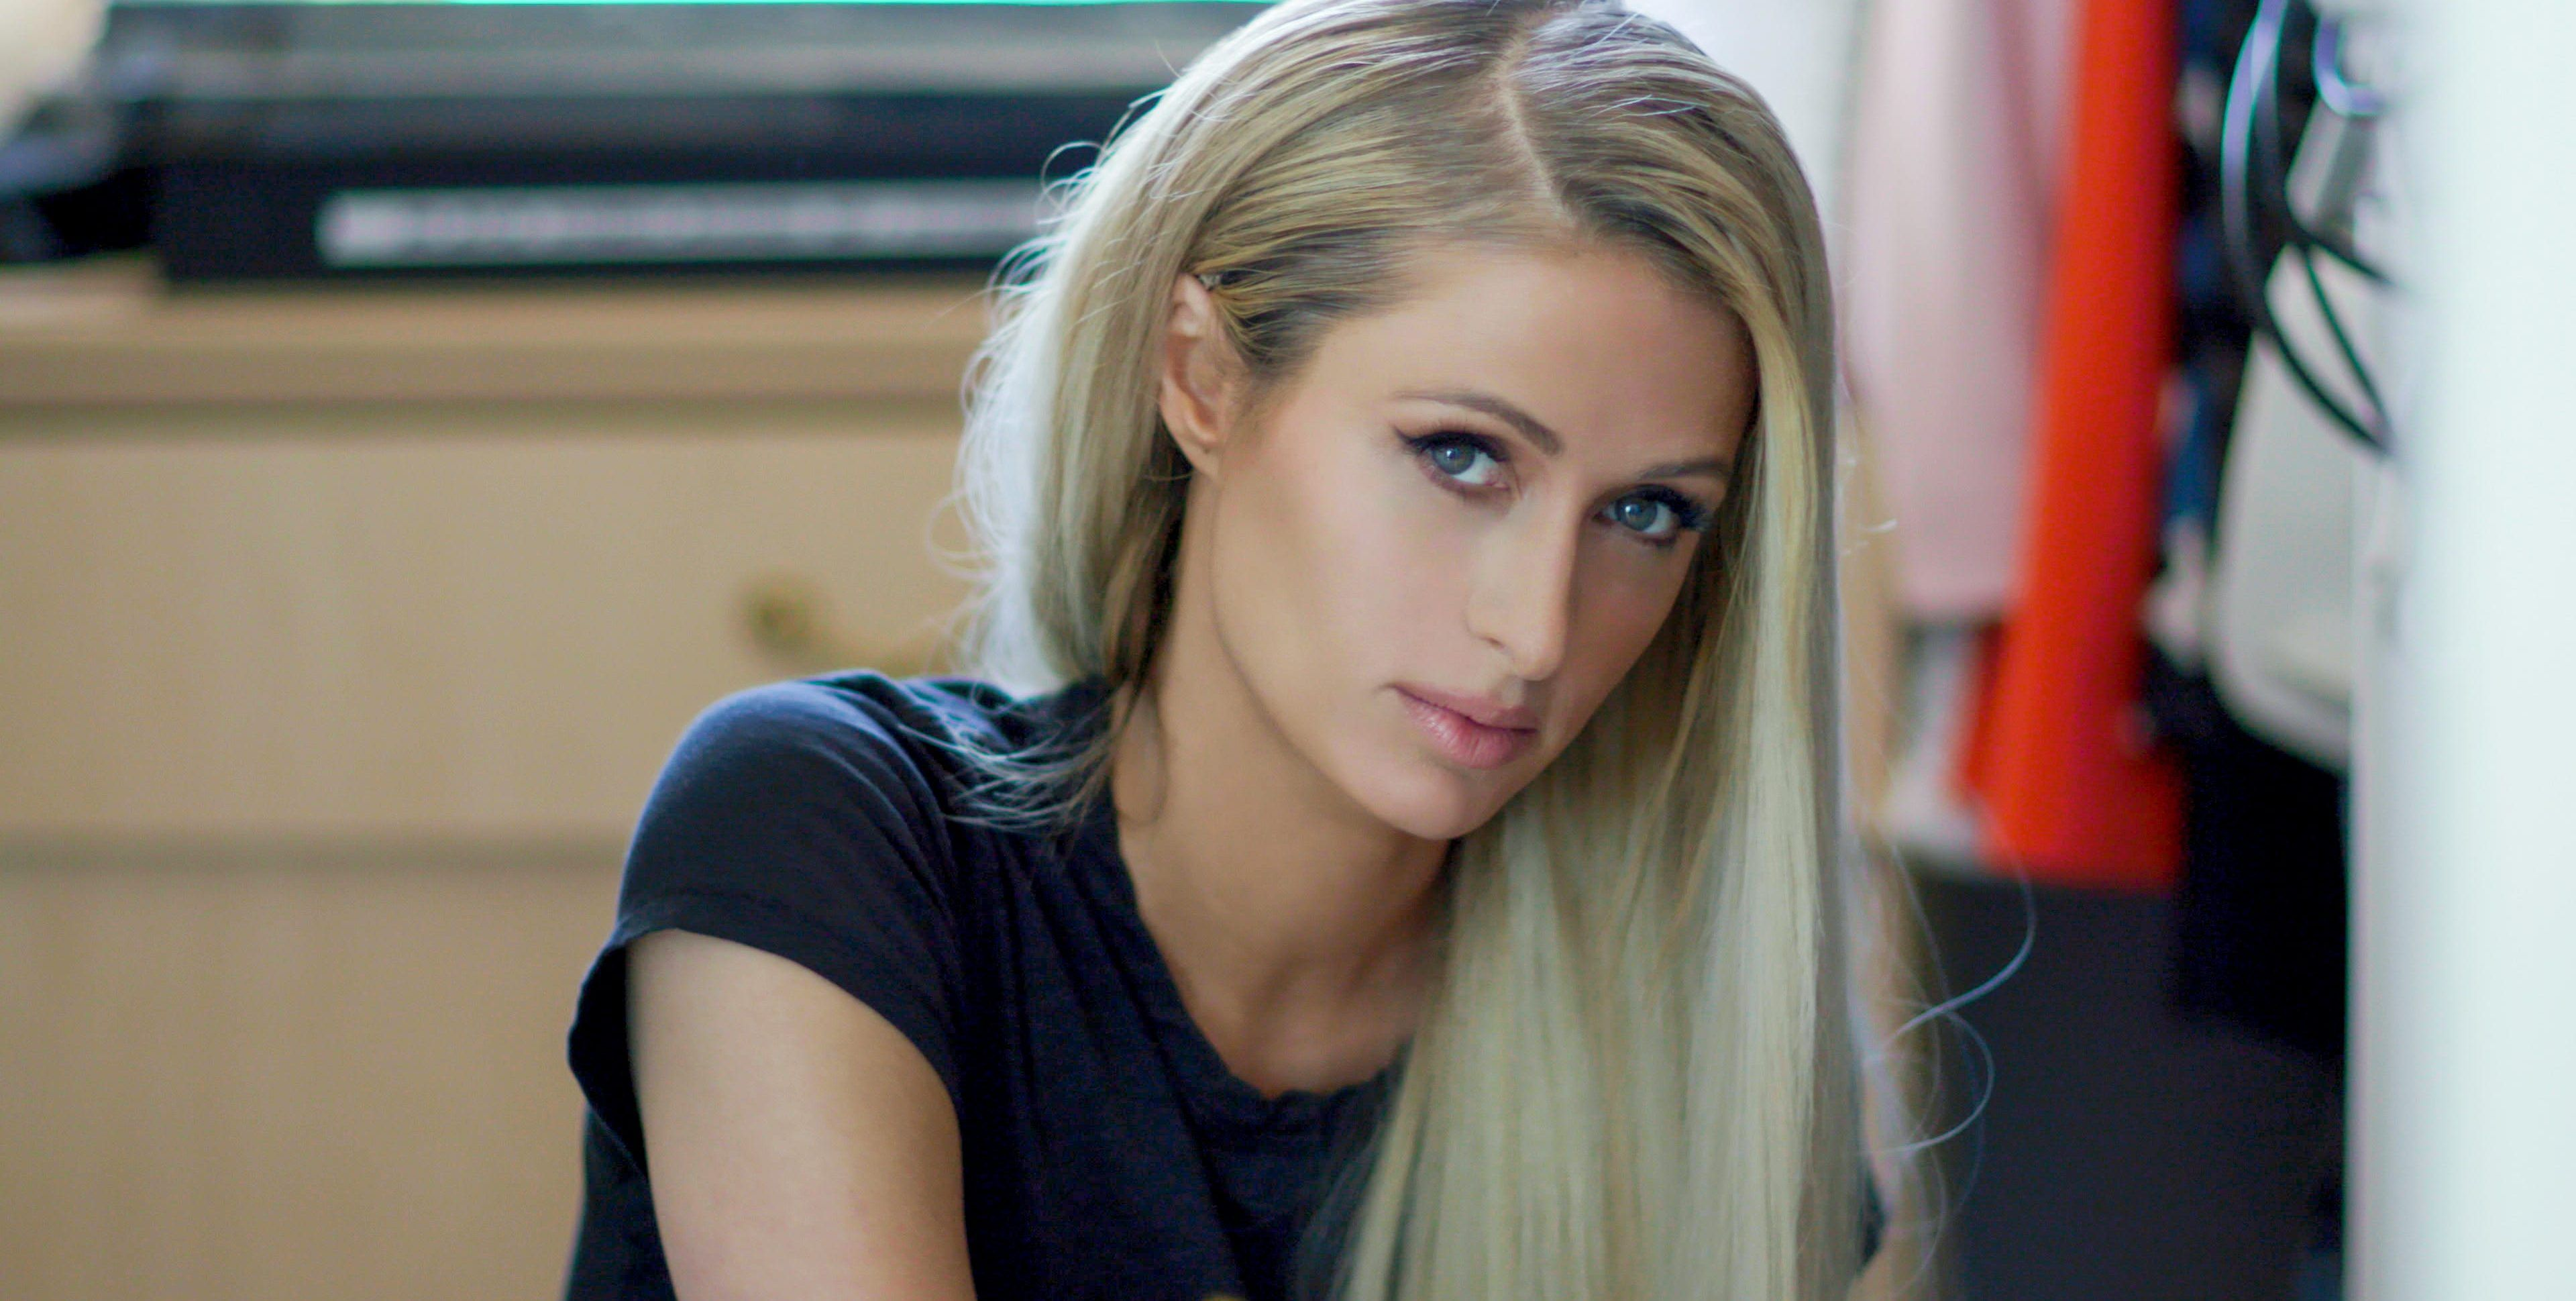 Was Paris Hilton Faking Her Level Of Intelligence For Reality TV?